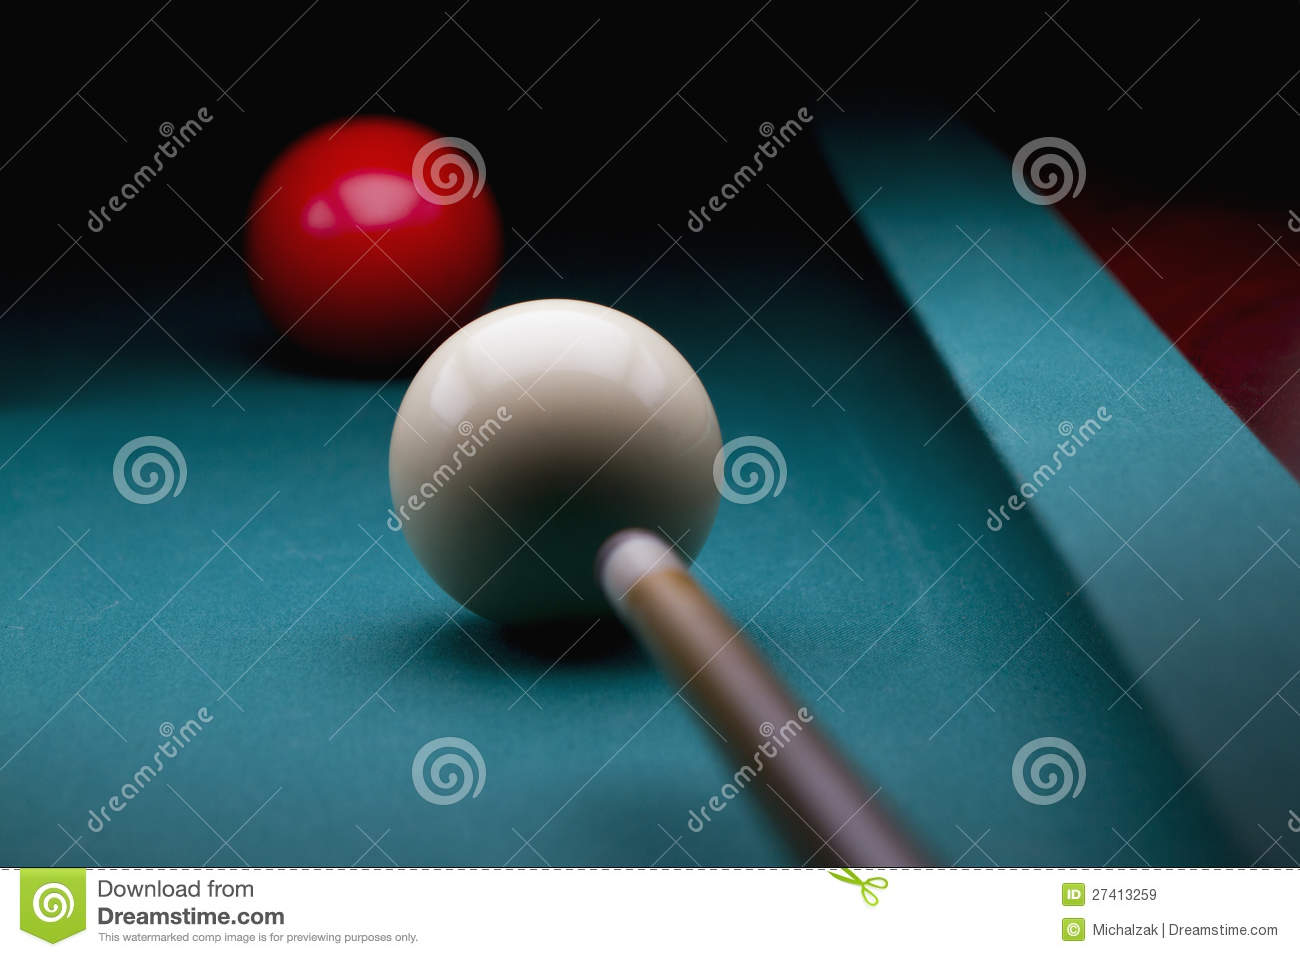 Carambole billiards